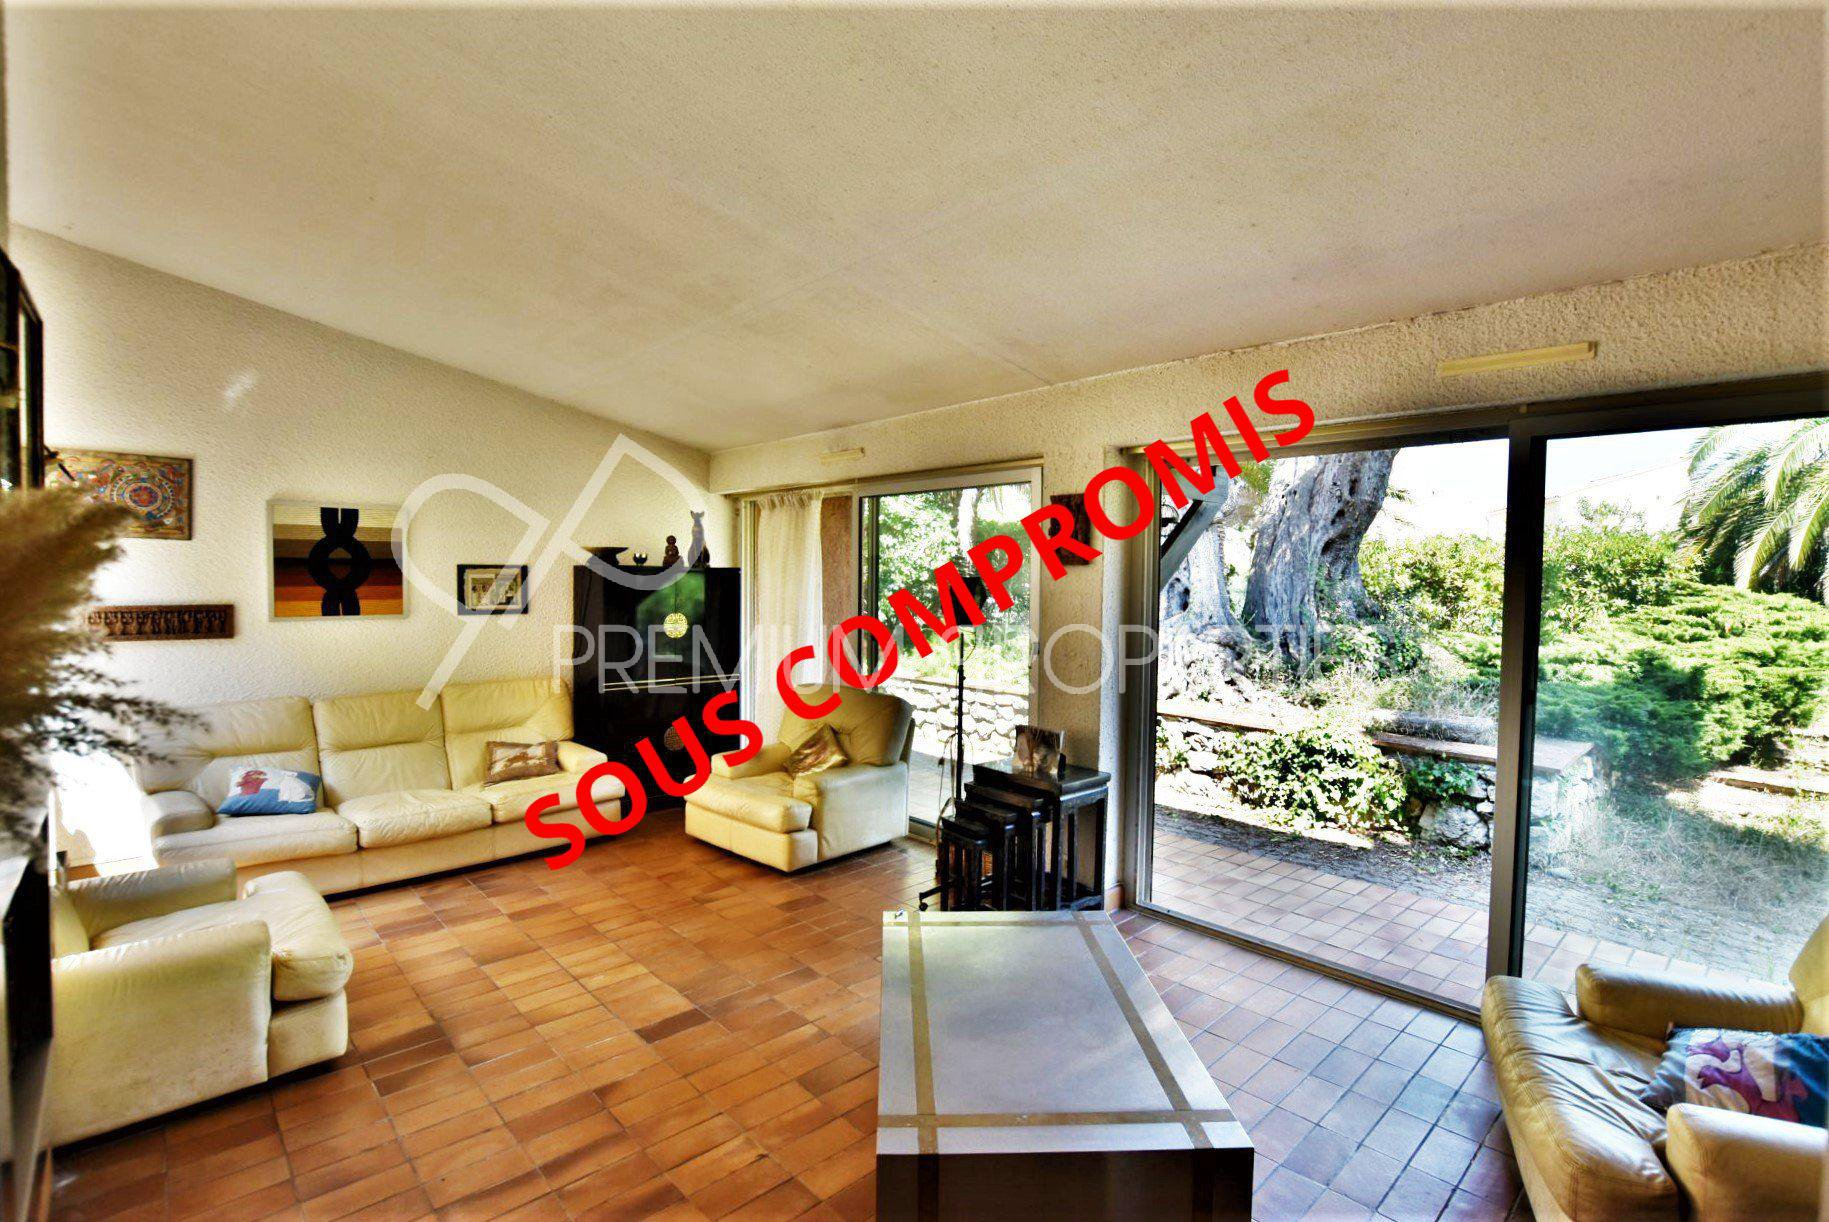 ANTIBES - GATED DOMAIN - ONE STOREY VILLA